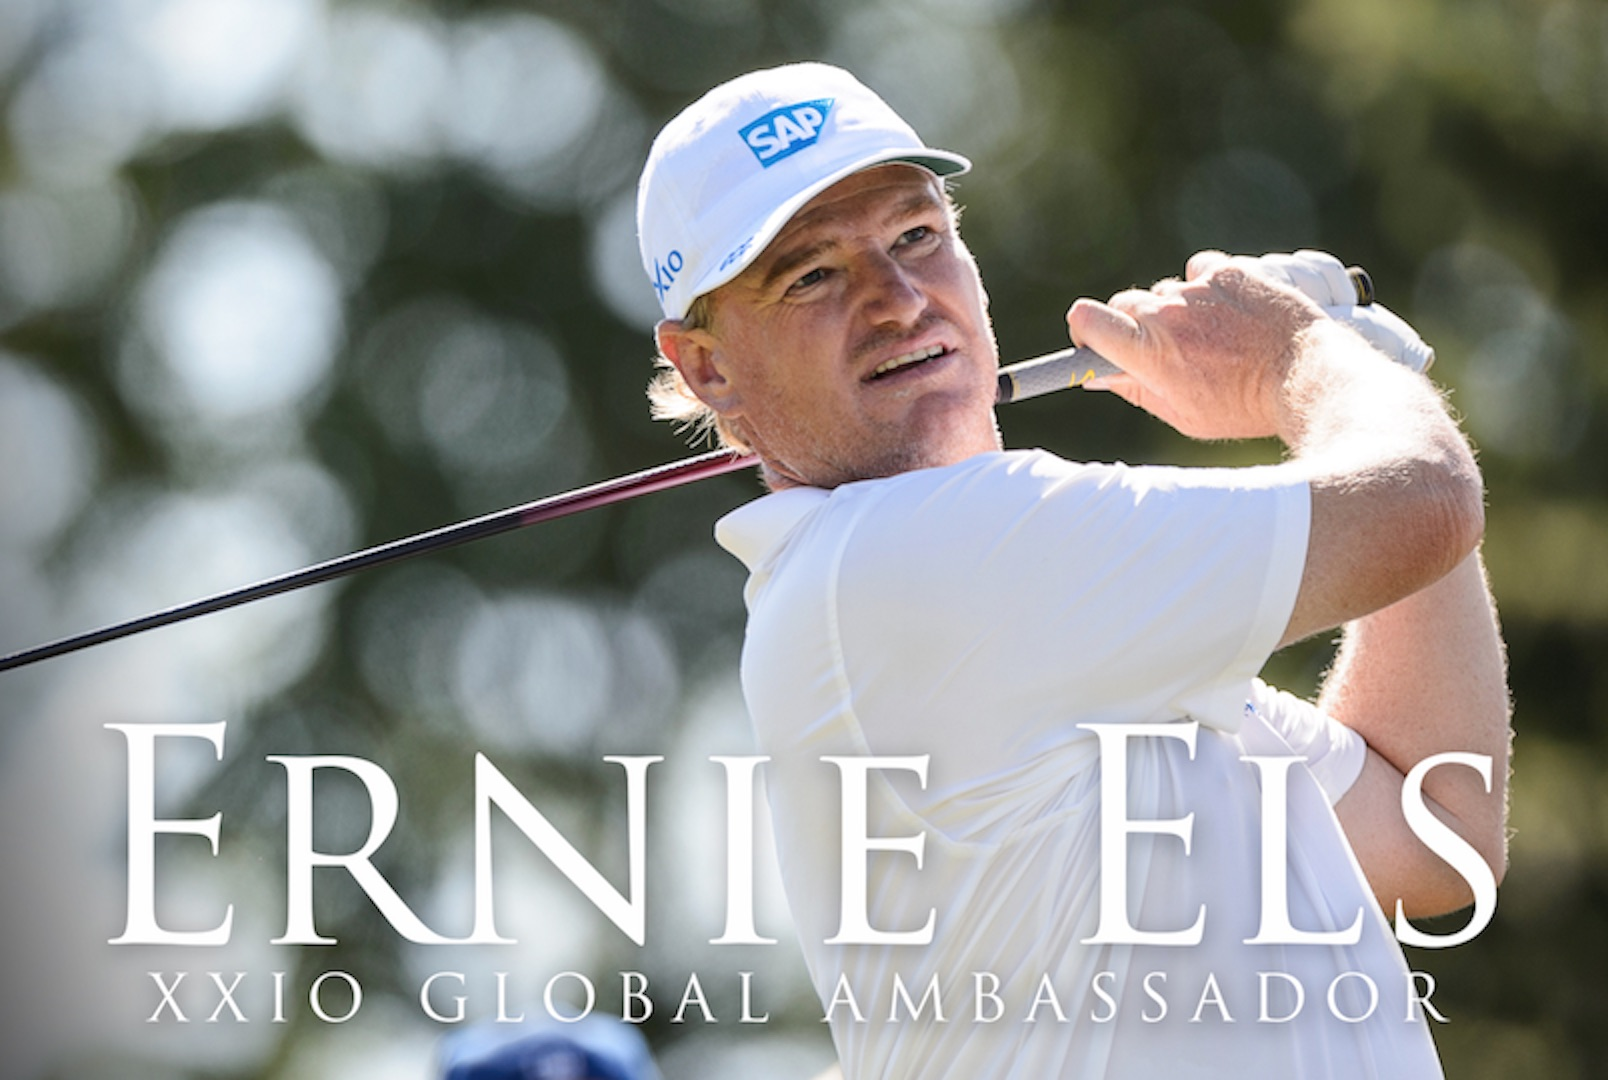 Ernie Els joins XXIO as a club ambassador